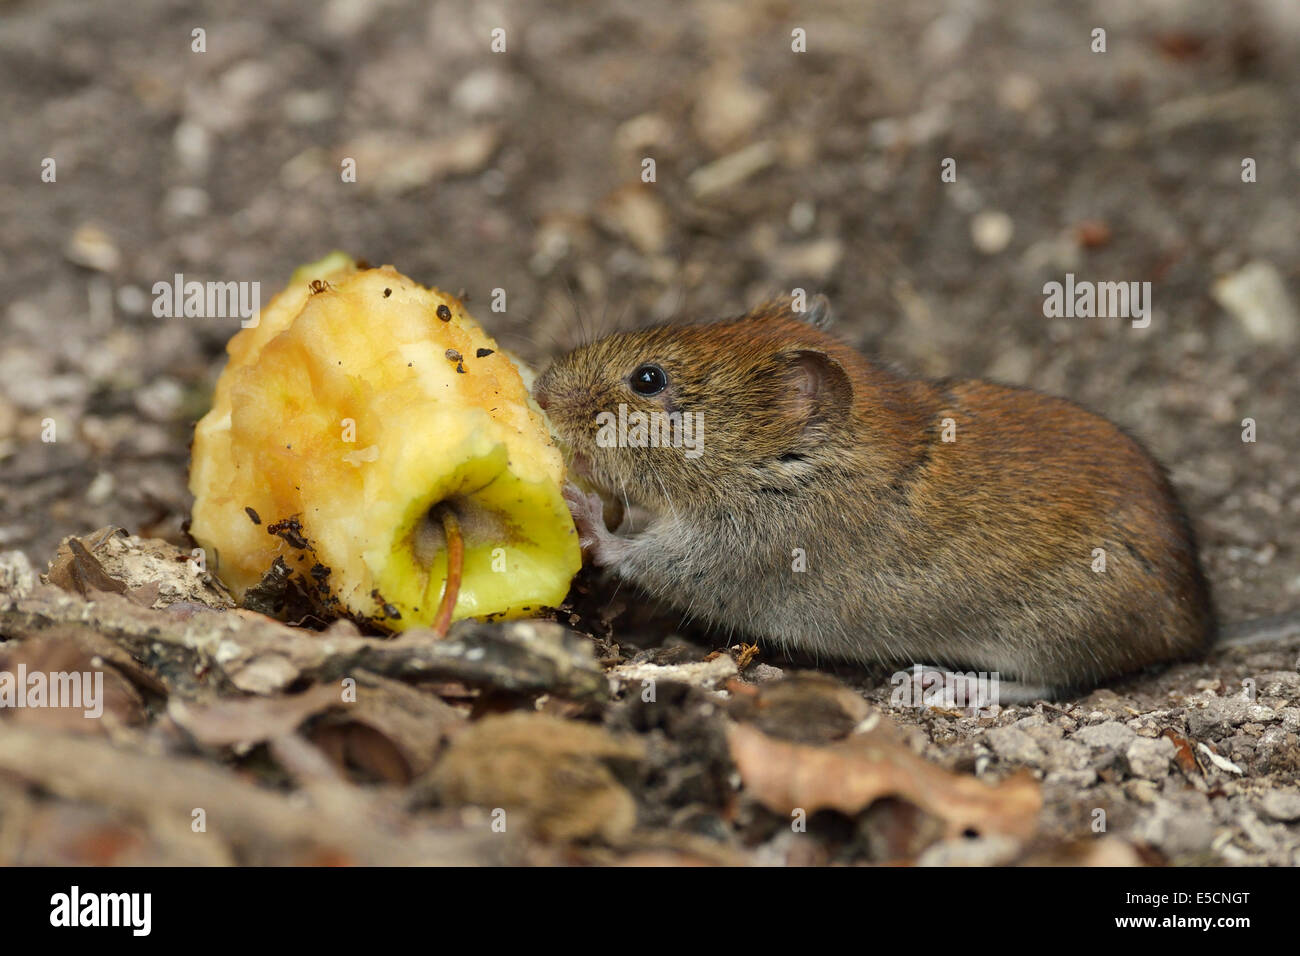 Bank vole (Myodes glareolus) eating an apple cores, Croatia - Stock Image